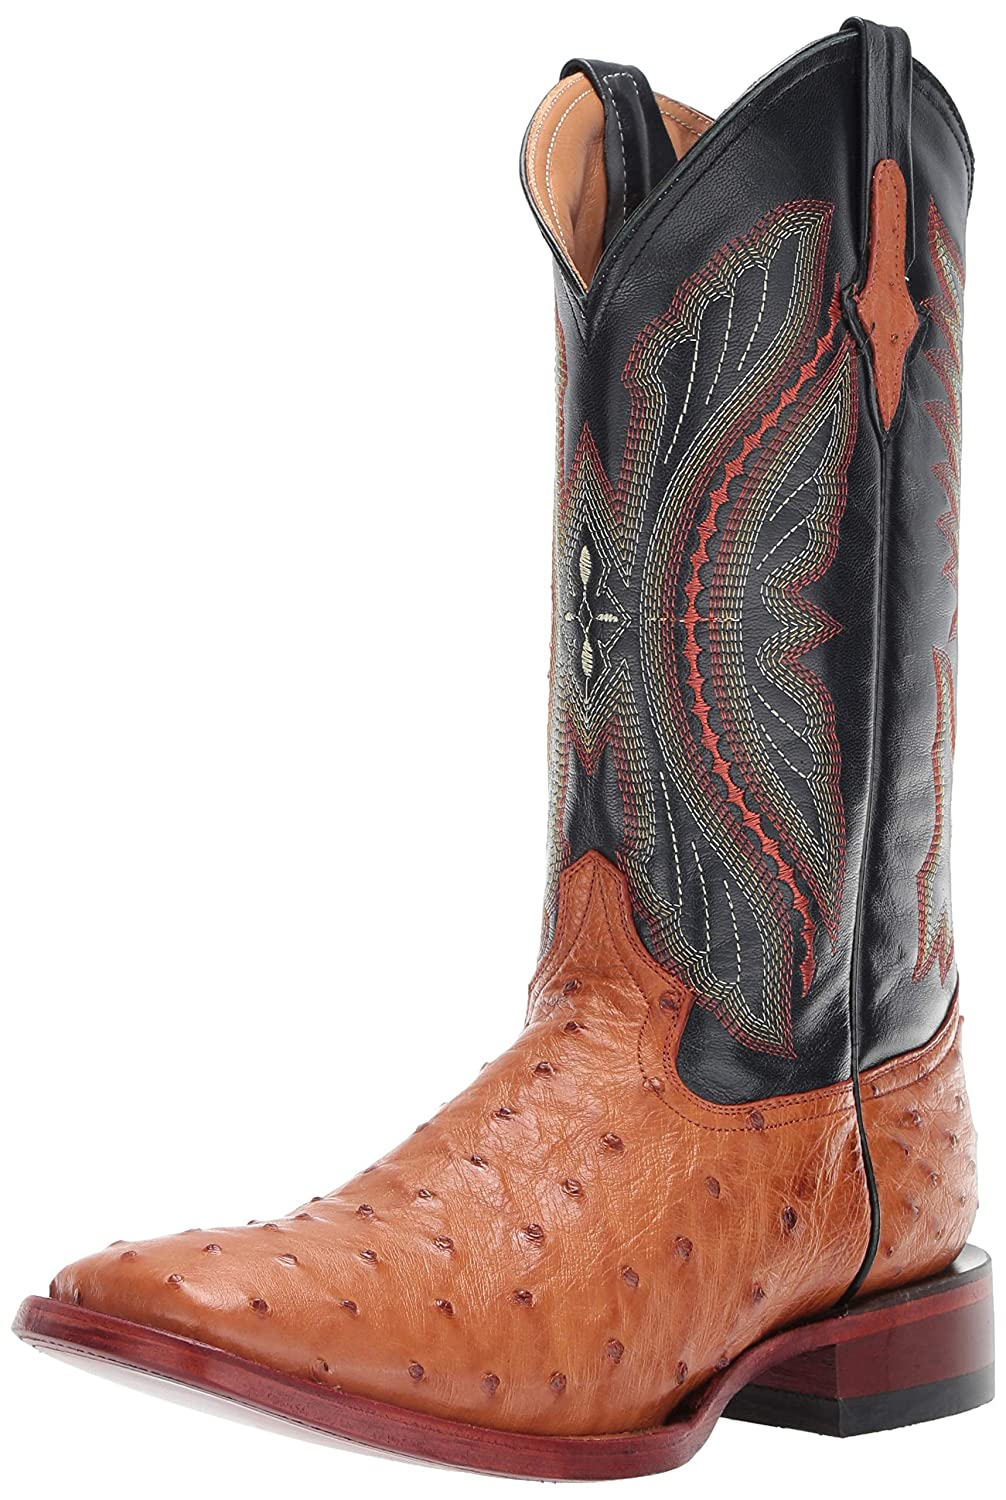 20f28bbfd1b Ferrini Men's Caiman Tail Blue Embroidered Cowboy Boot Square Toe